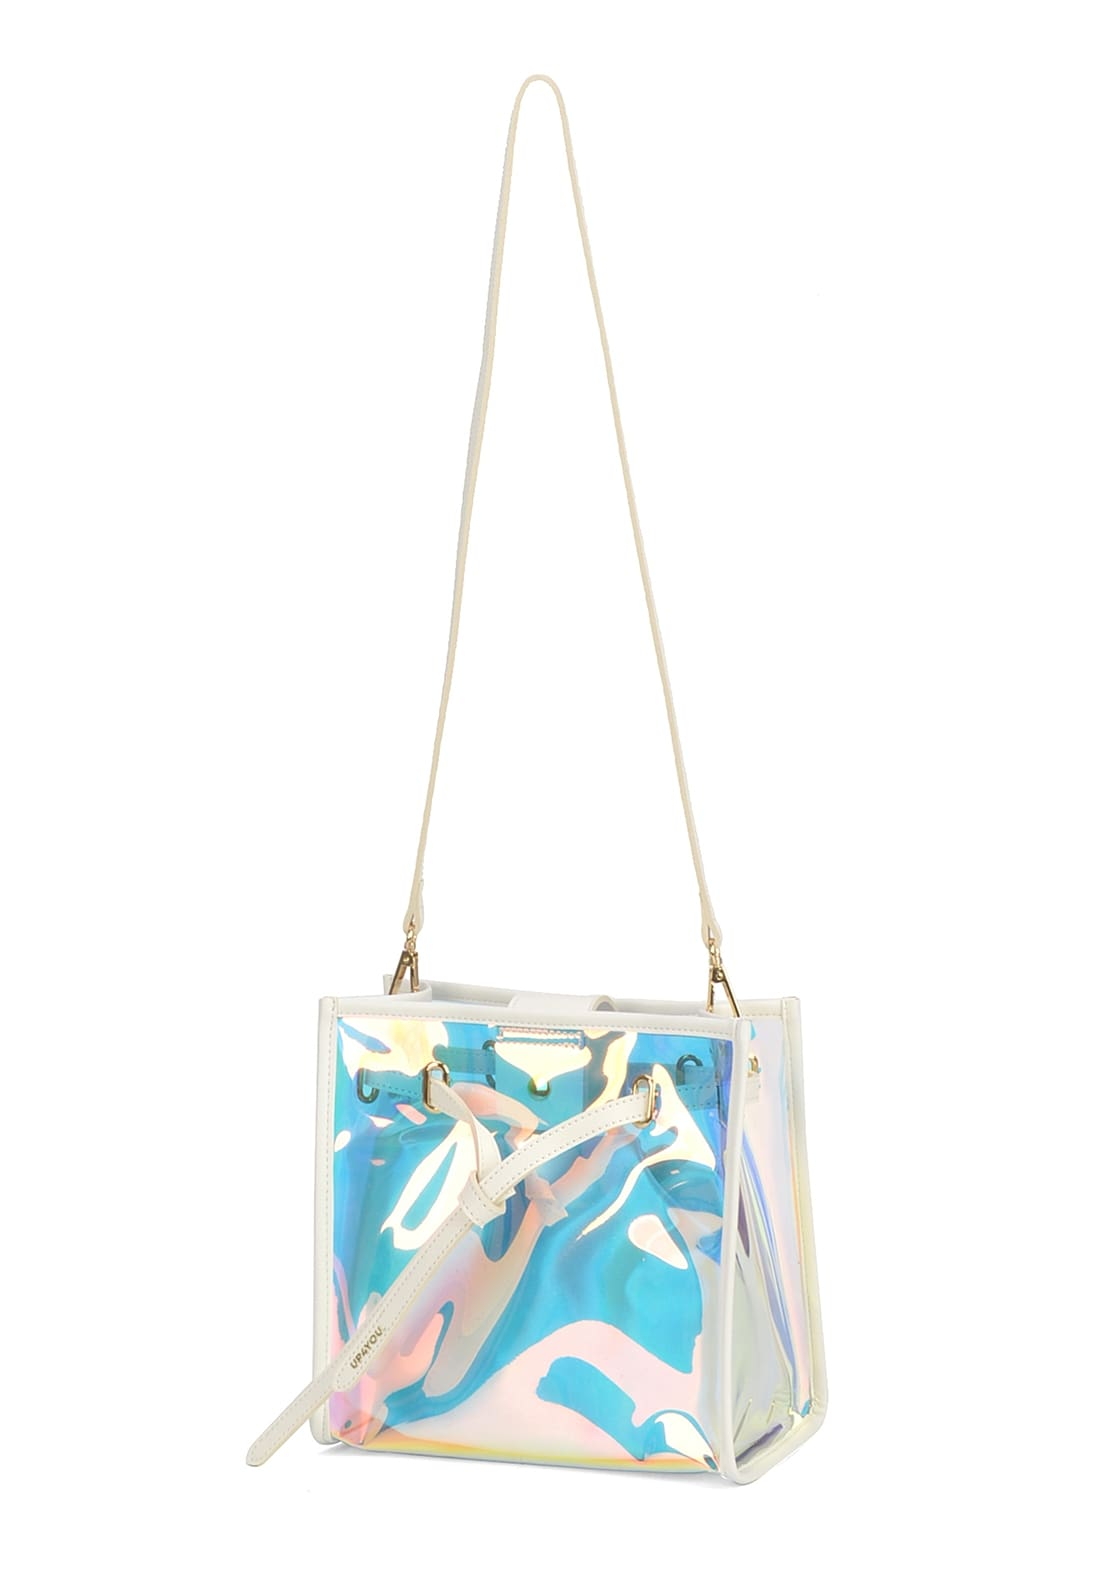 Bolsa Ombro Holográfica UP4YOU Transparente Transversal